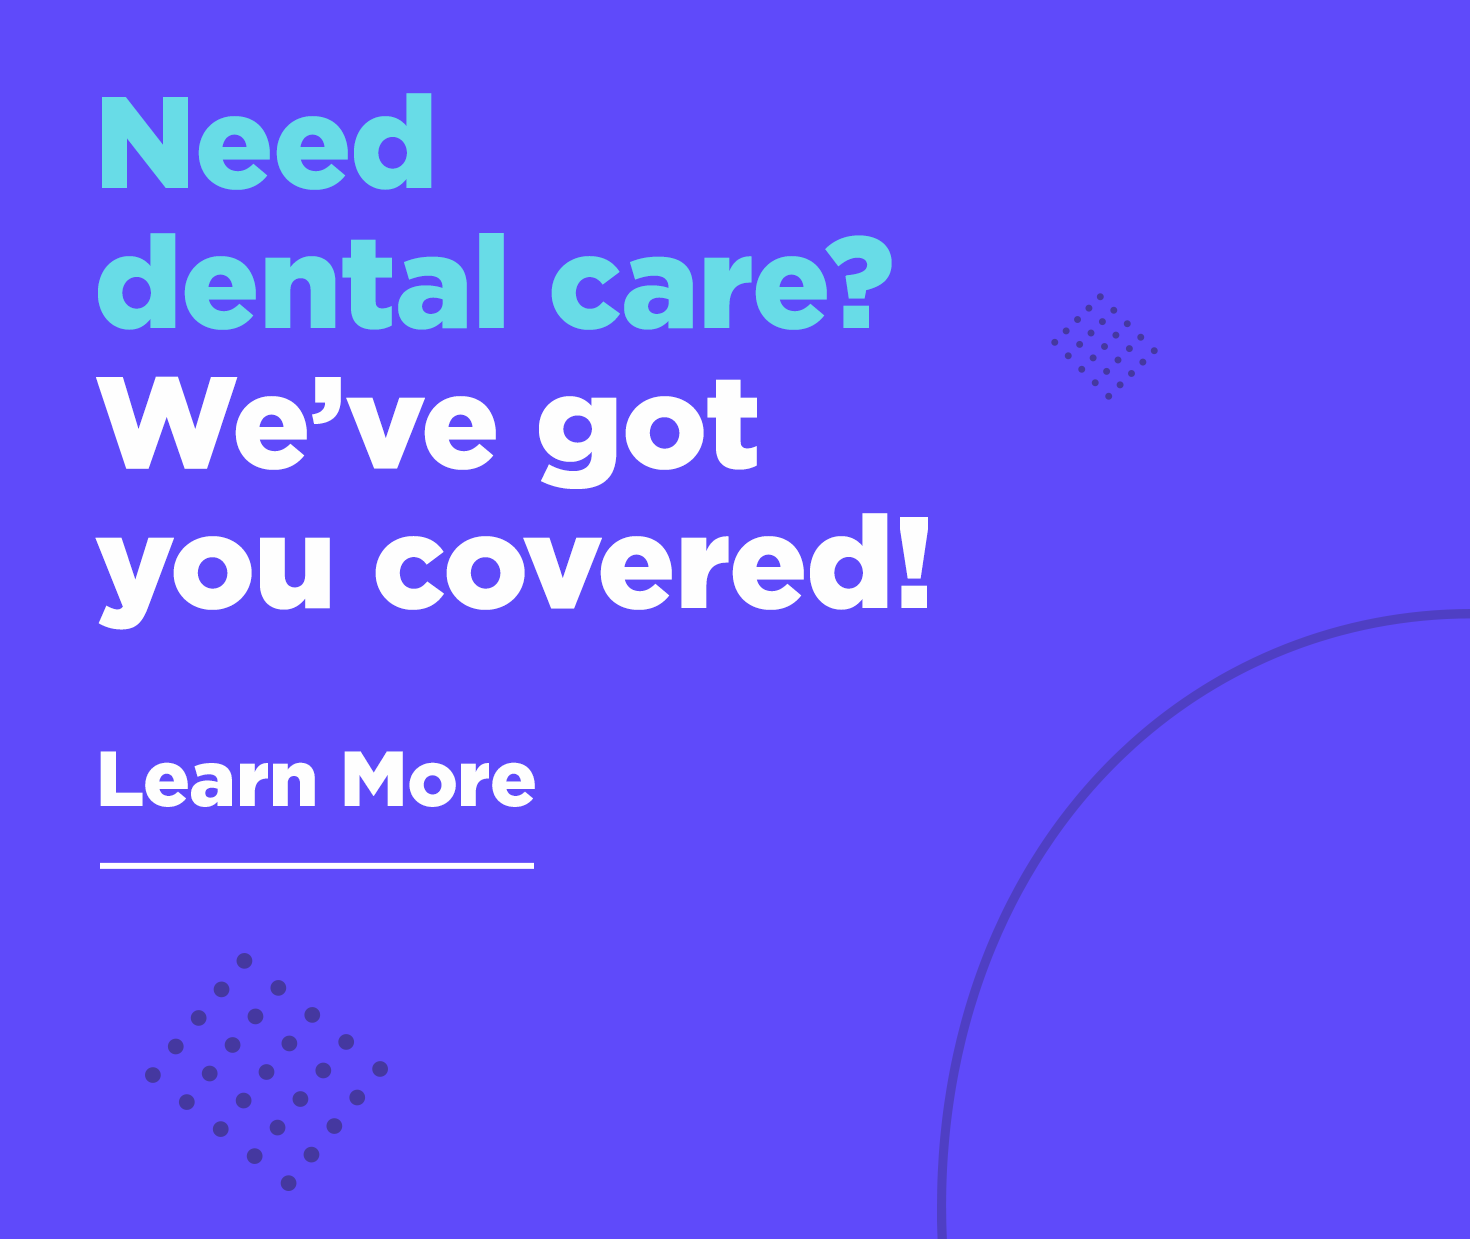 Need dental care? We've got you covered! Learn More. - Cooley Station Dental Group